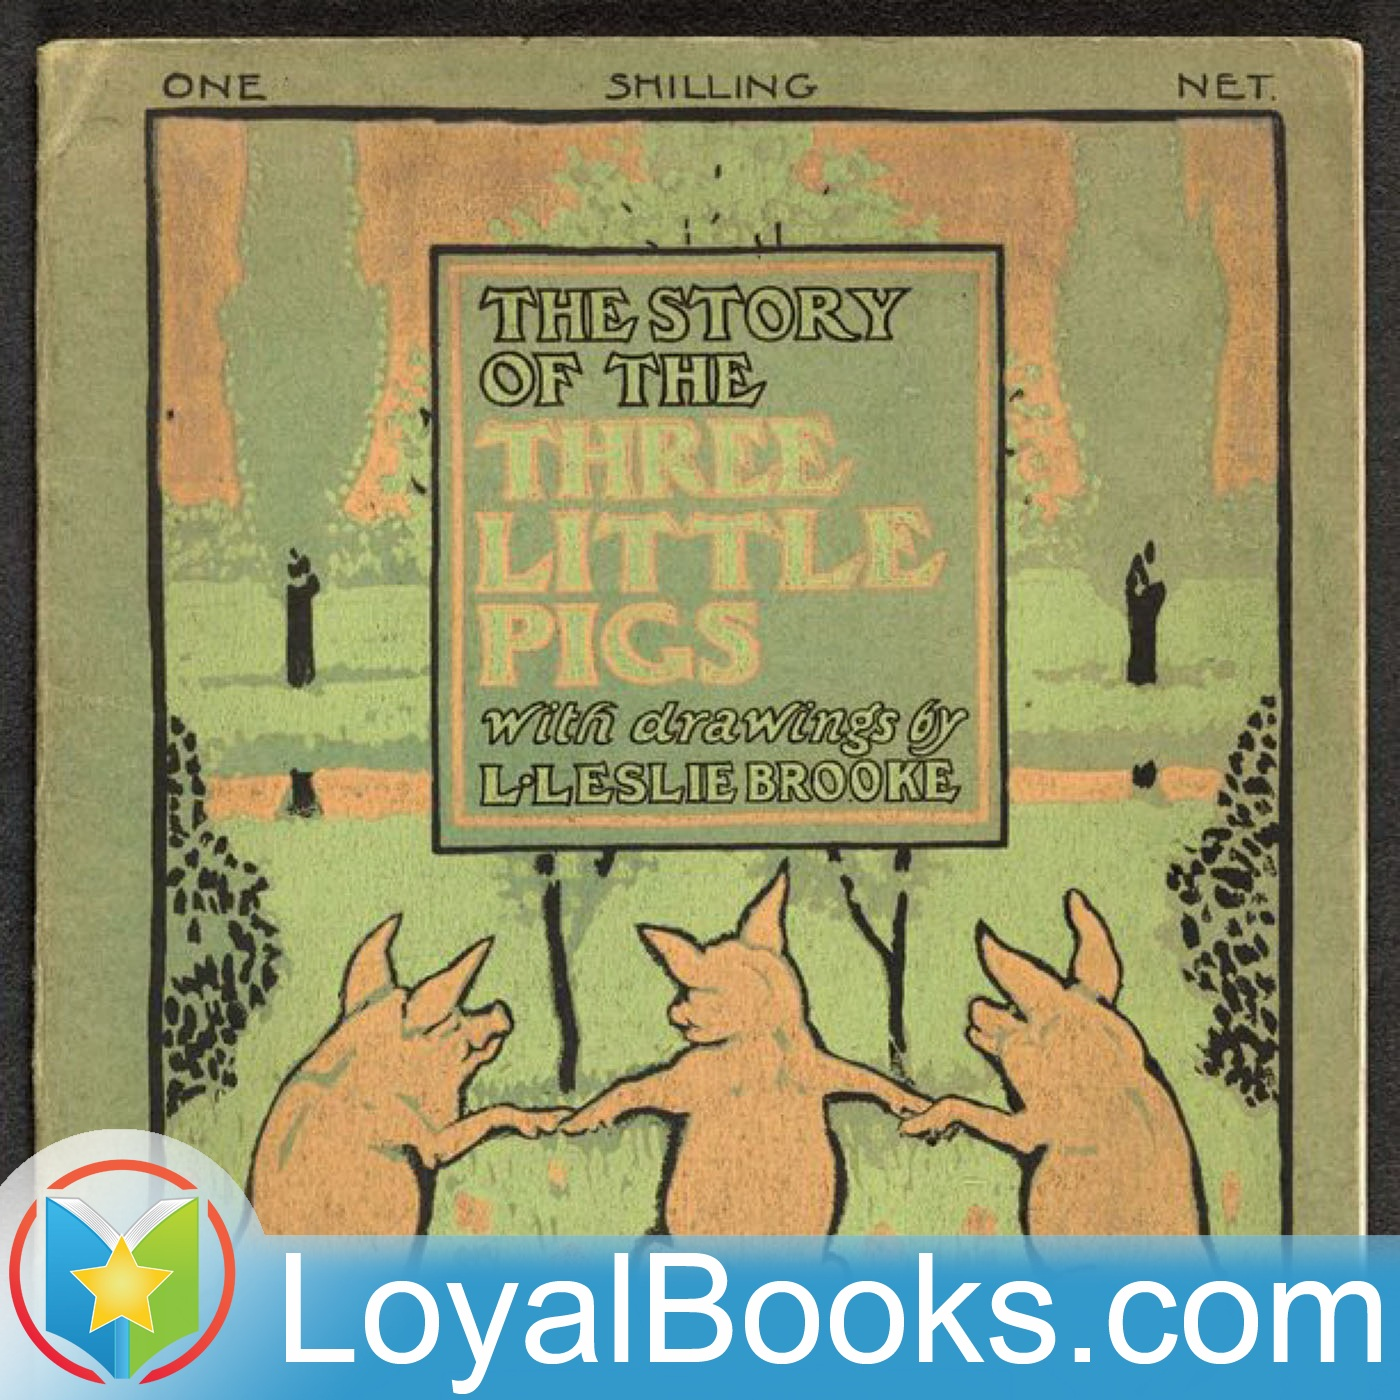 <![CDATA[The Story of the Three Little Pigs by L. Leslie Brooke]]>